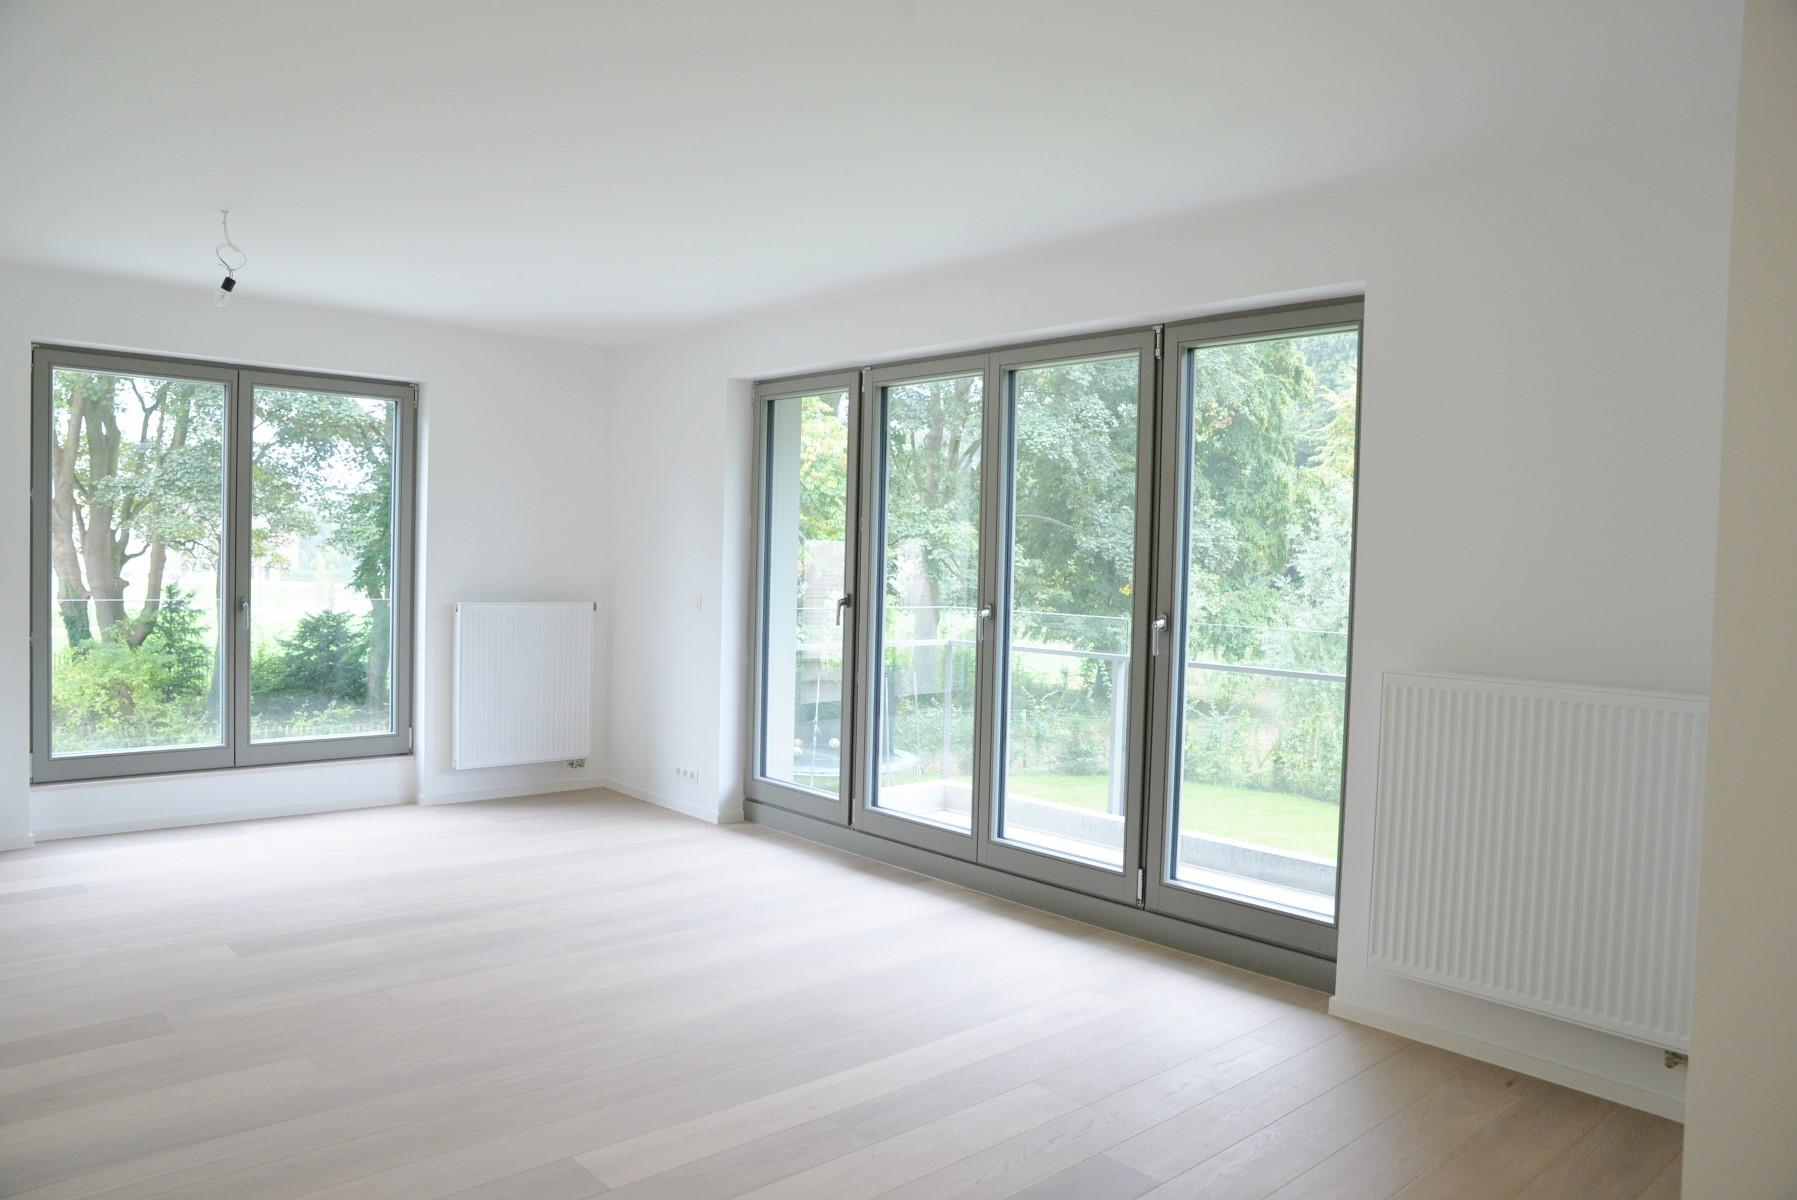 Appartement exceptionnel - Uccle - #4051009-0